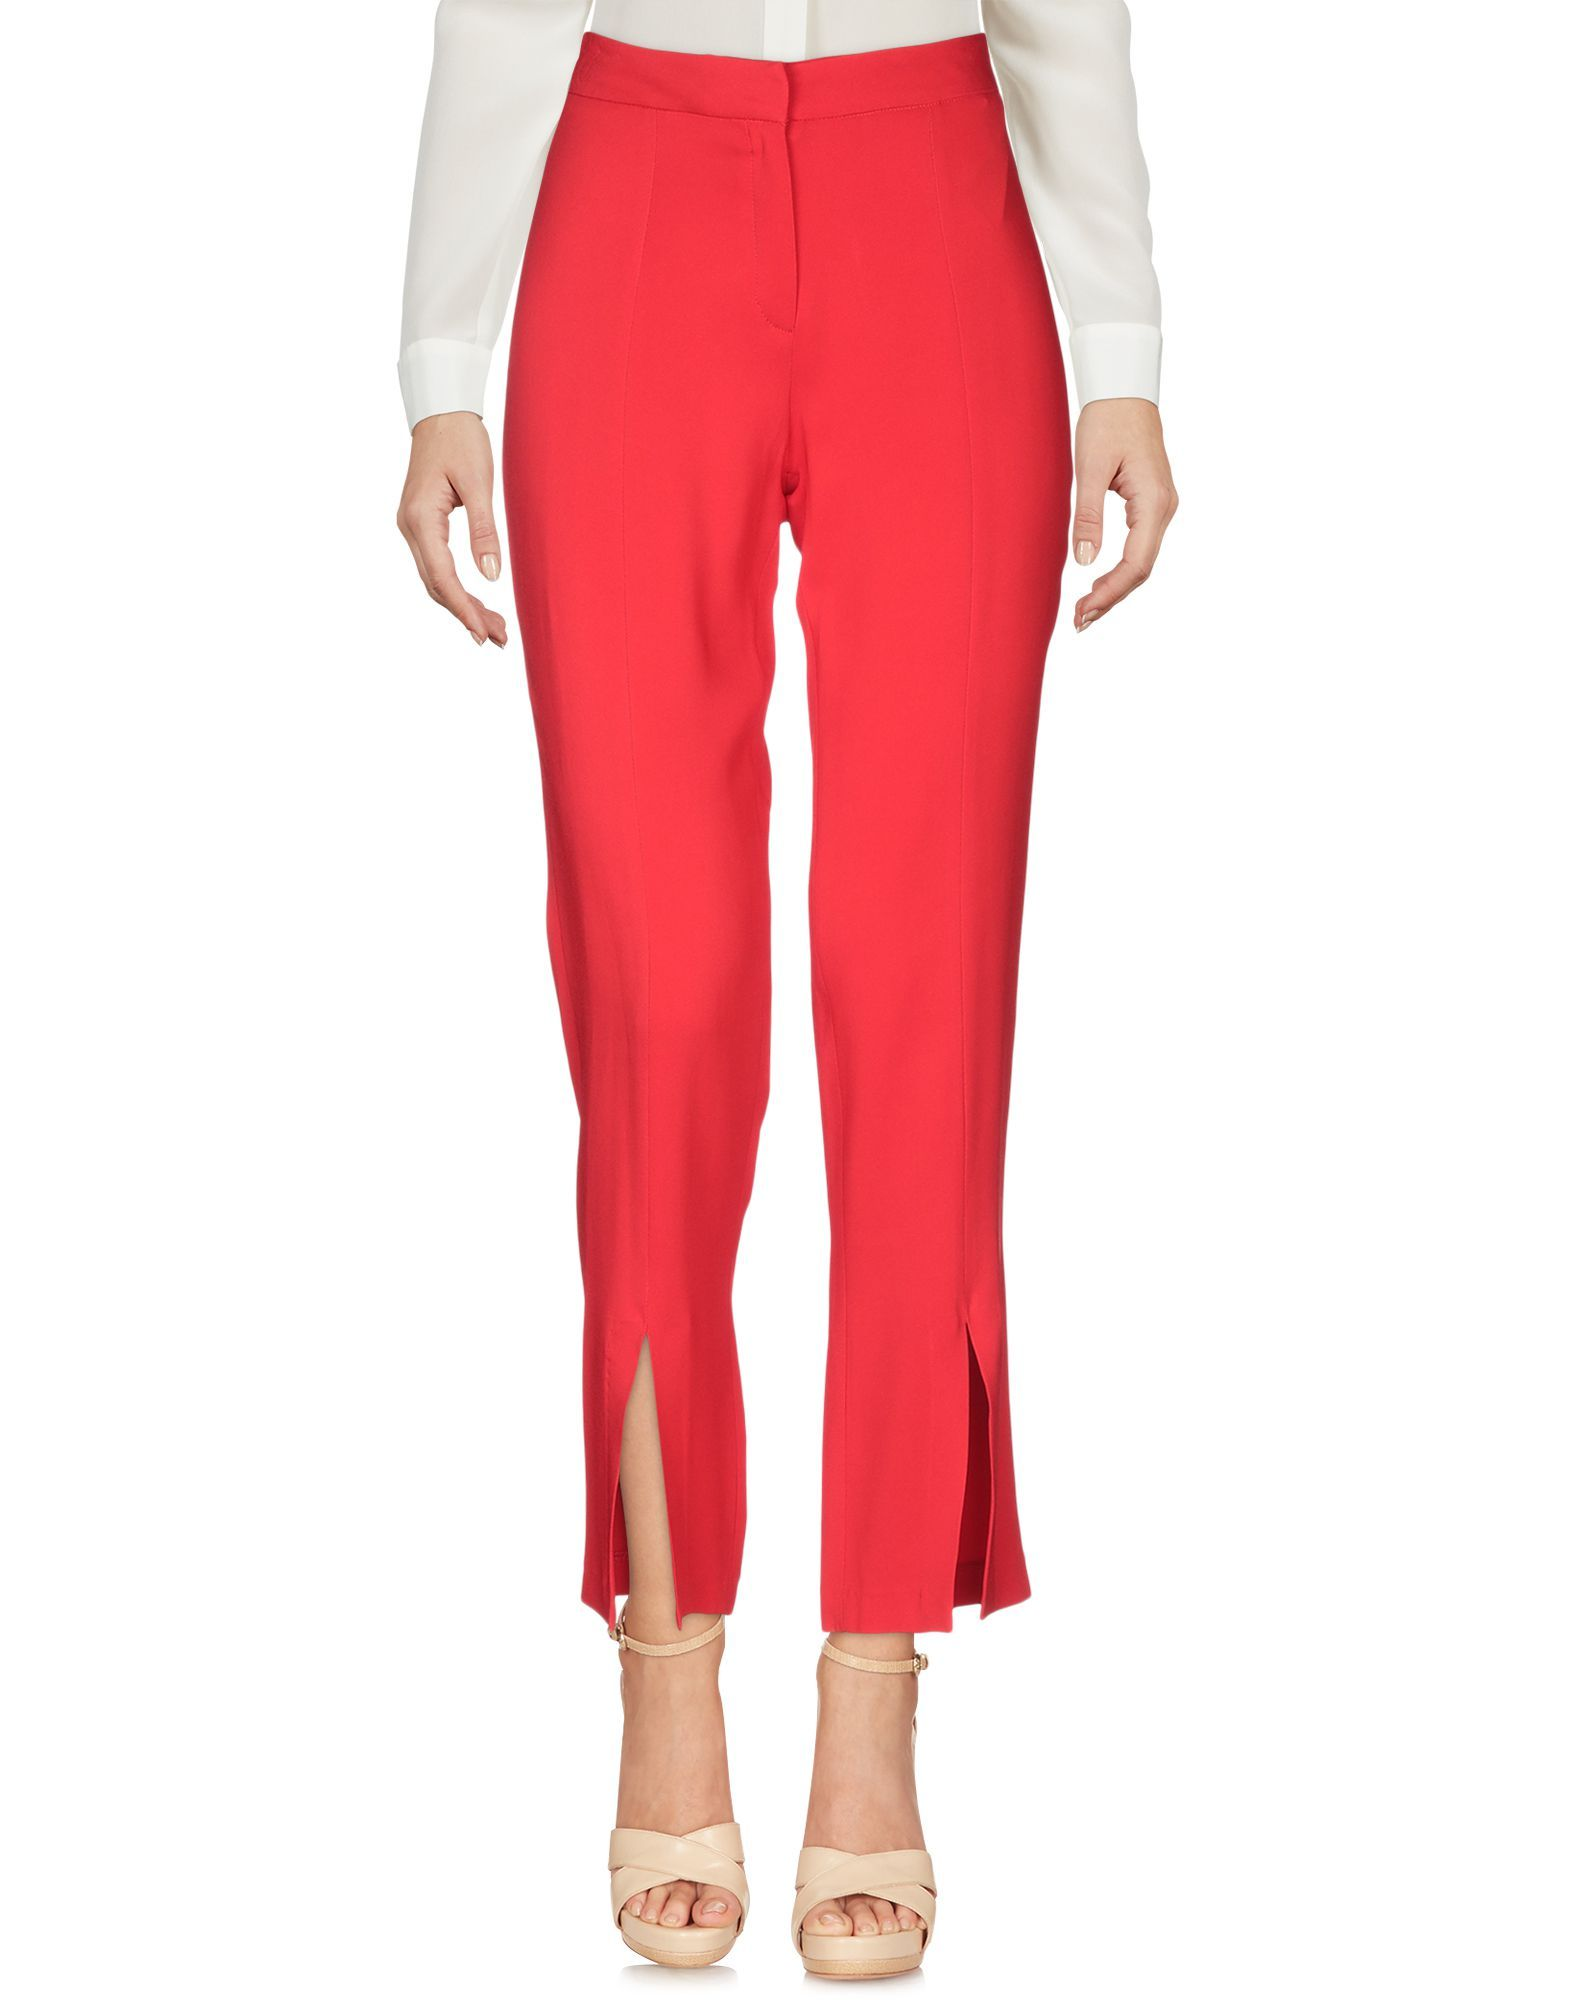 Federica Tosi Red Crepe Tapered Leg Trousers